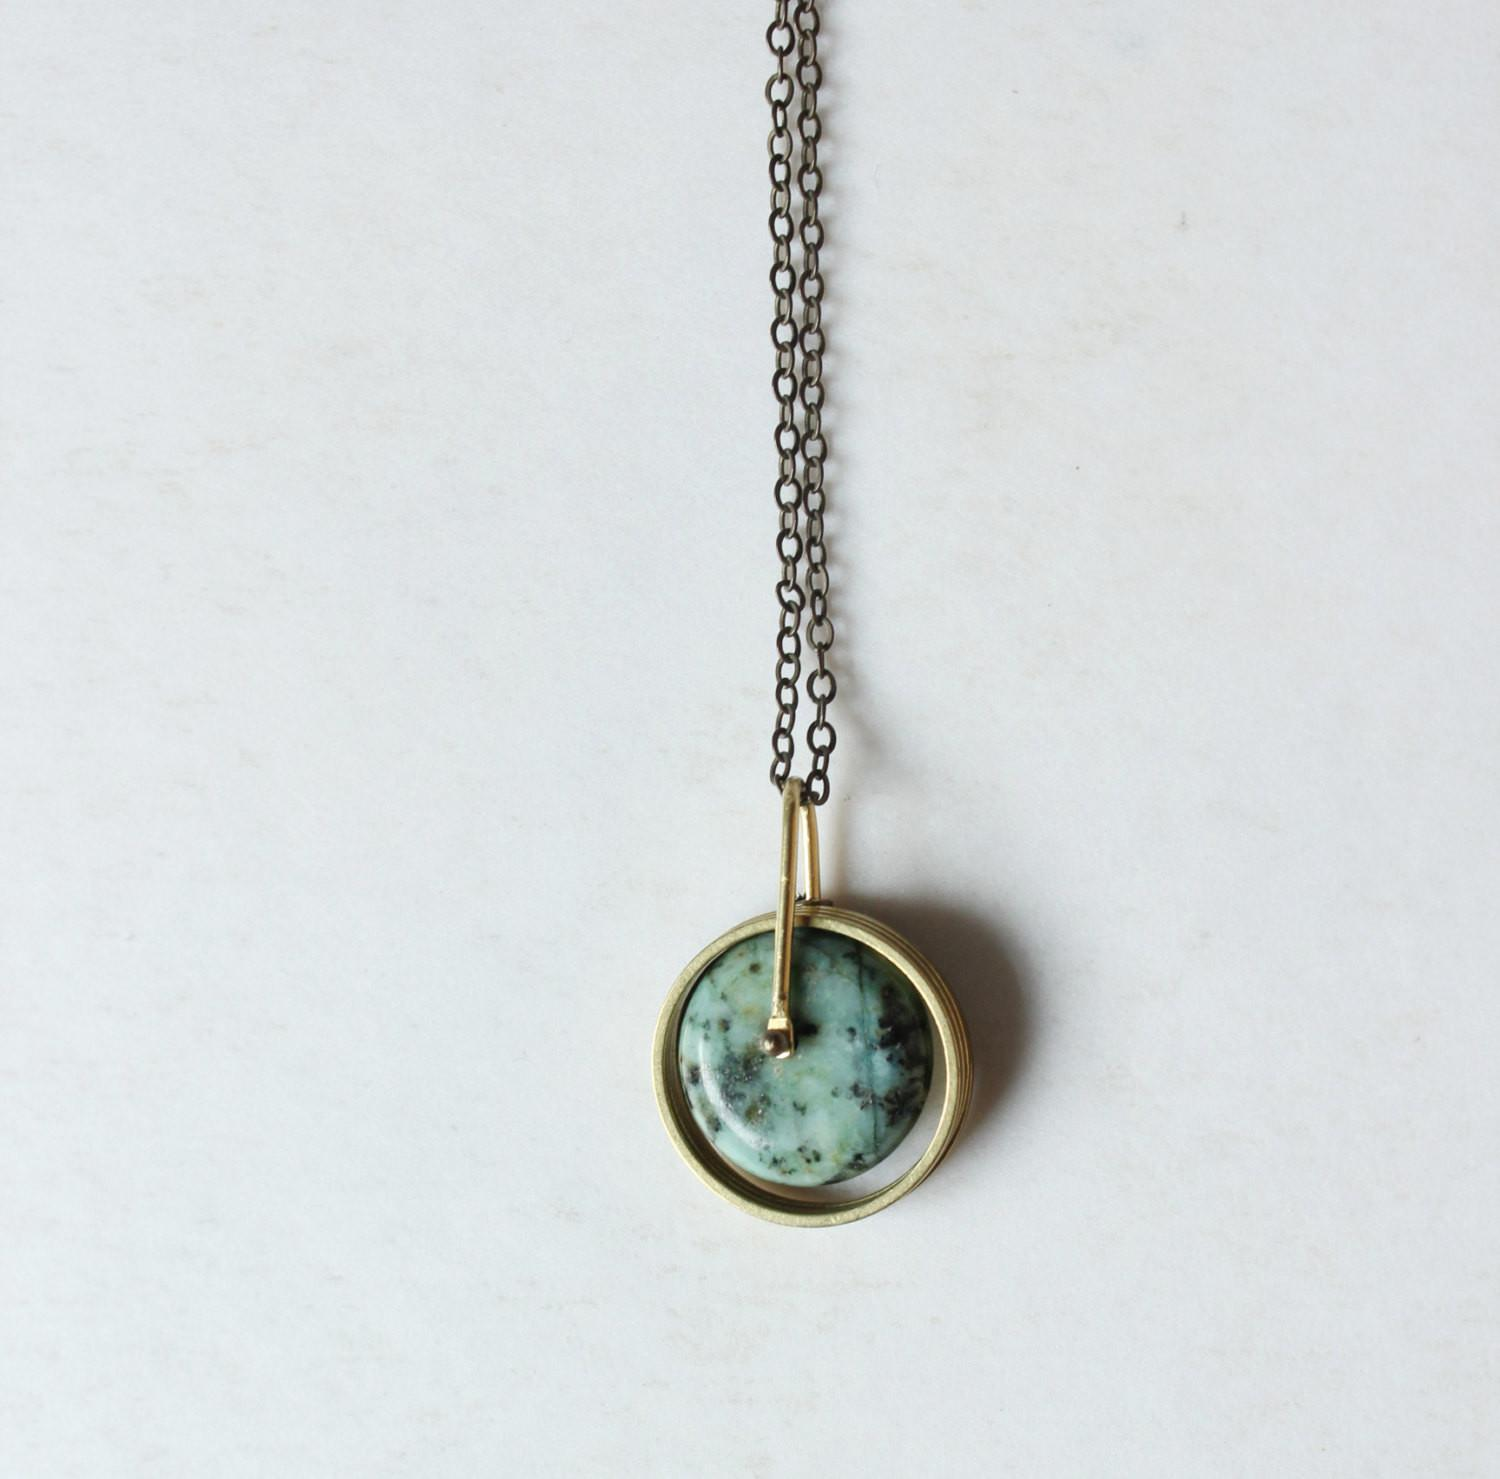 Turquoise Necklace Gold Pendant Modern